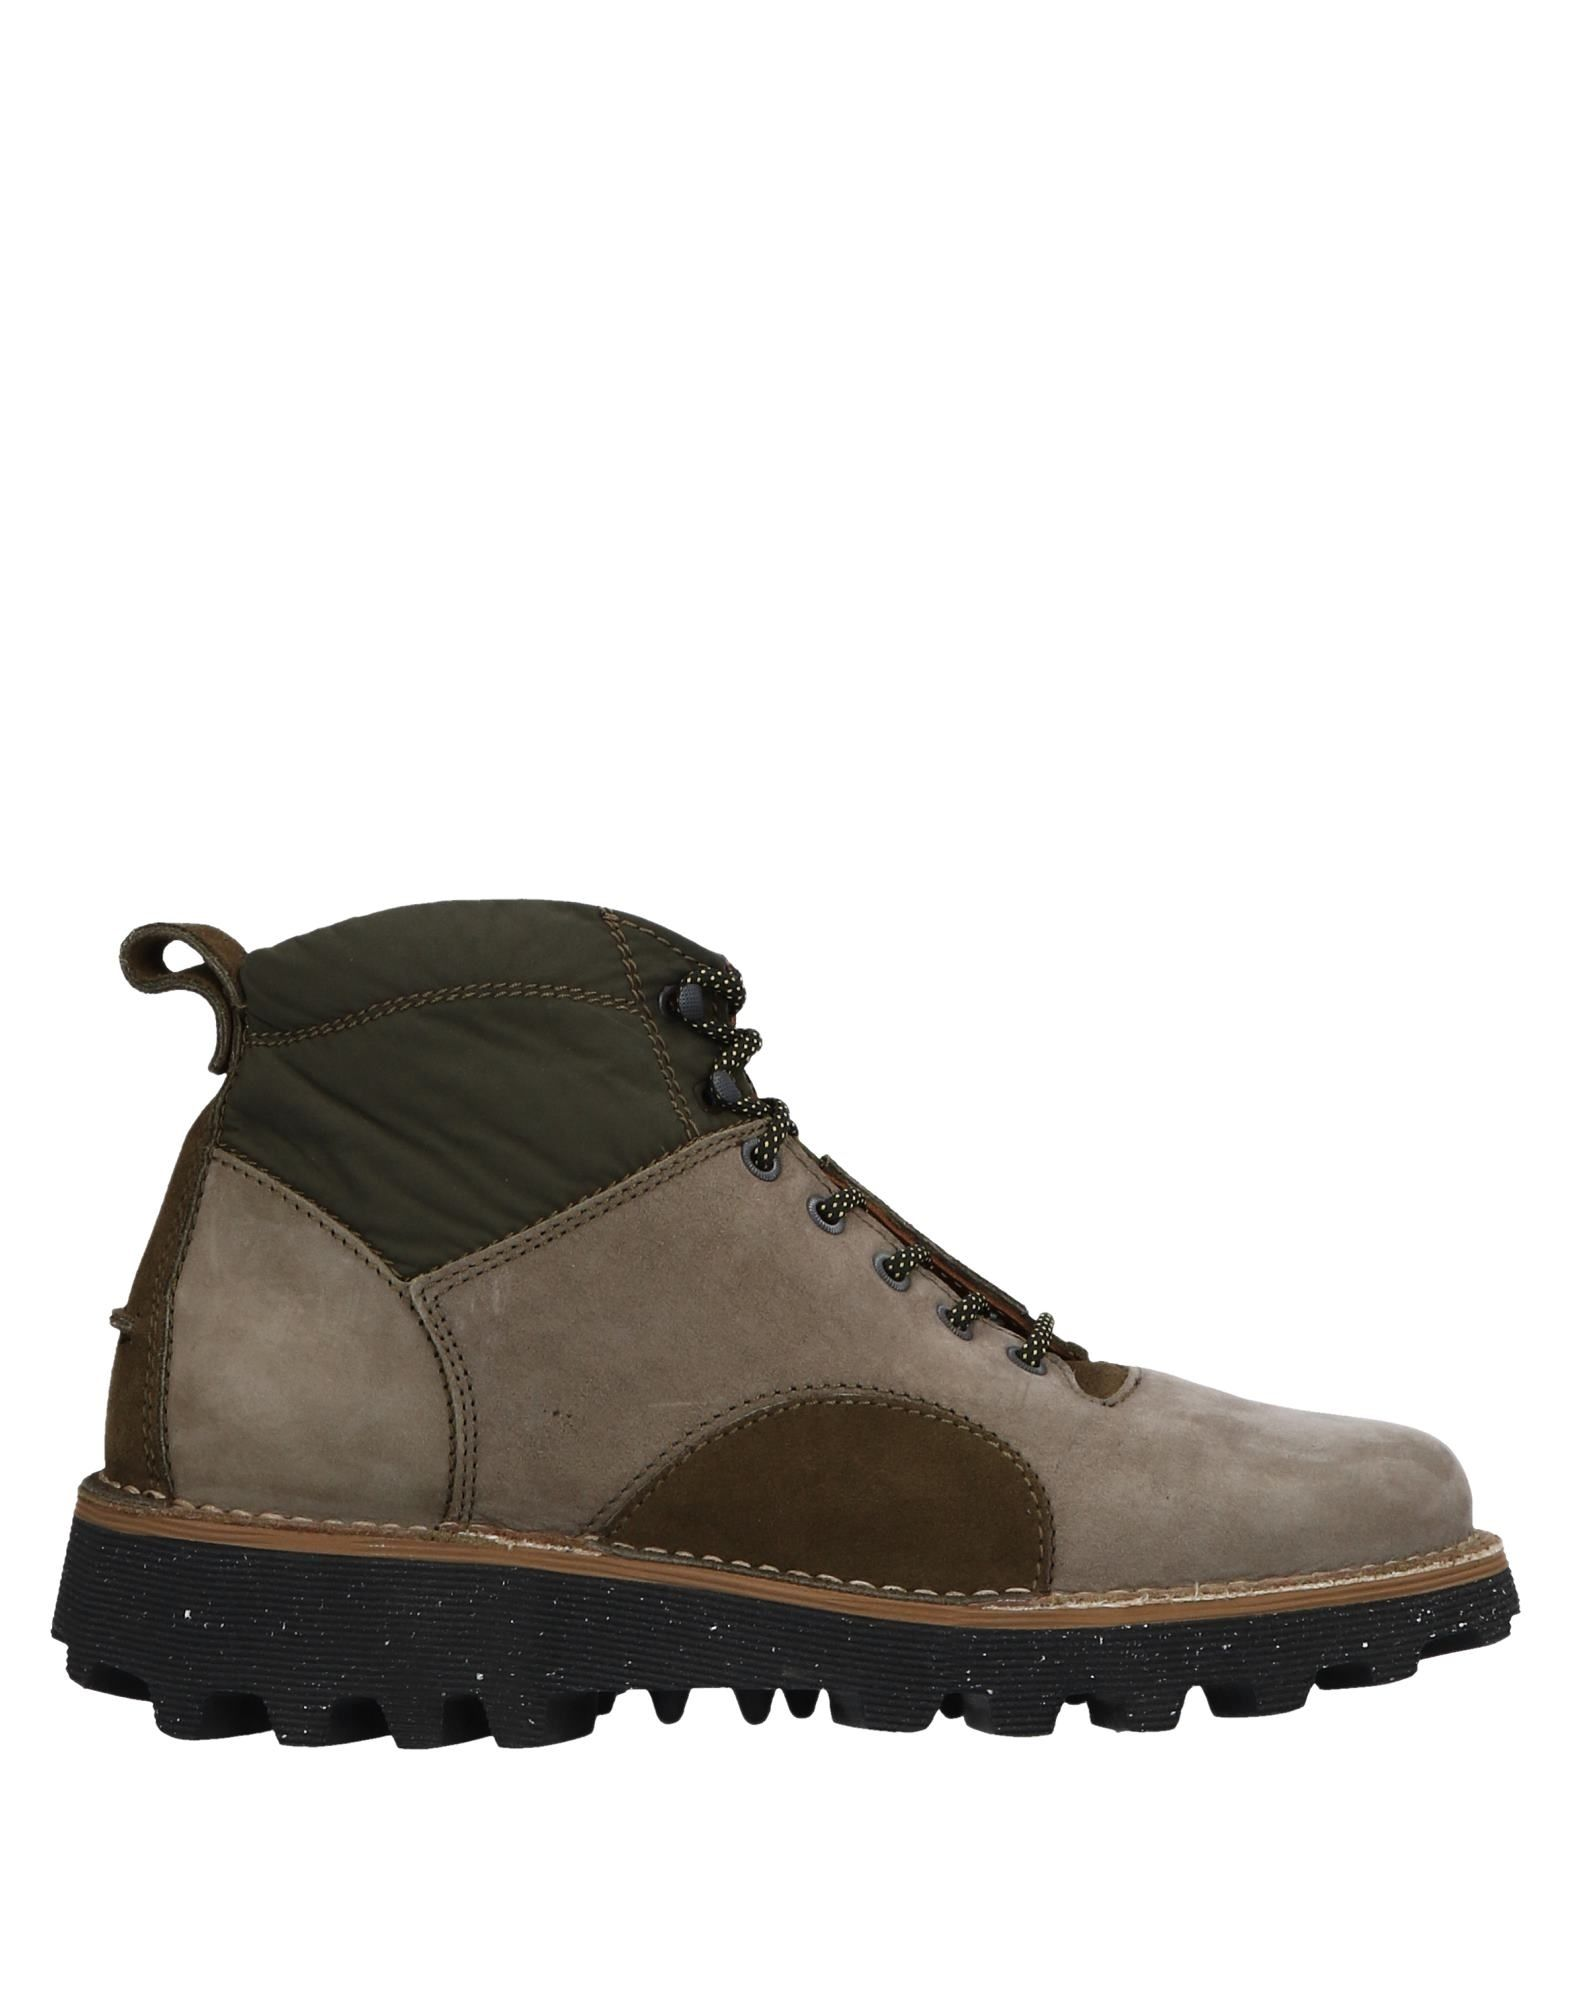 BARLEYCORN Boots in Grey